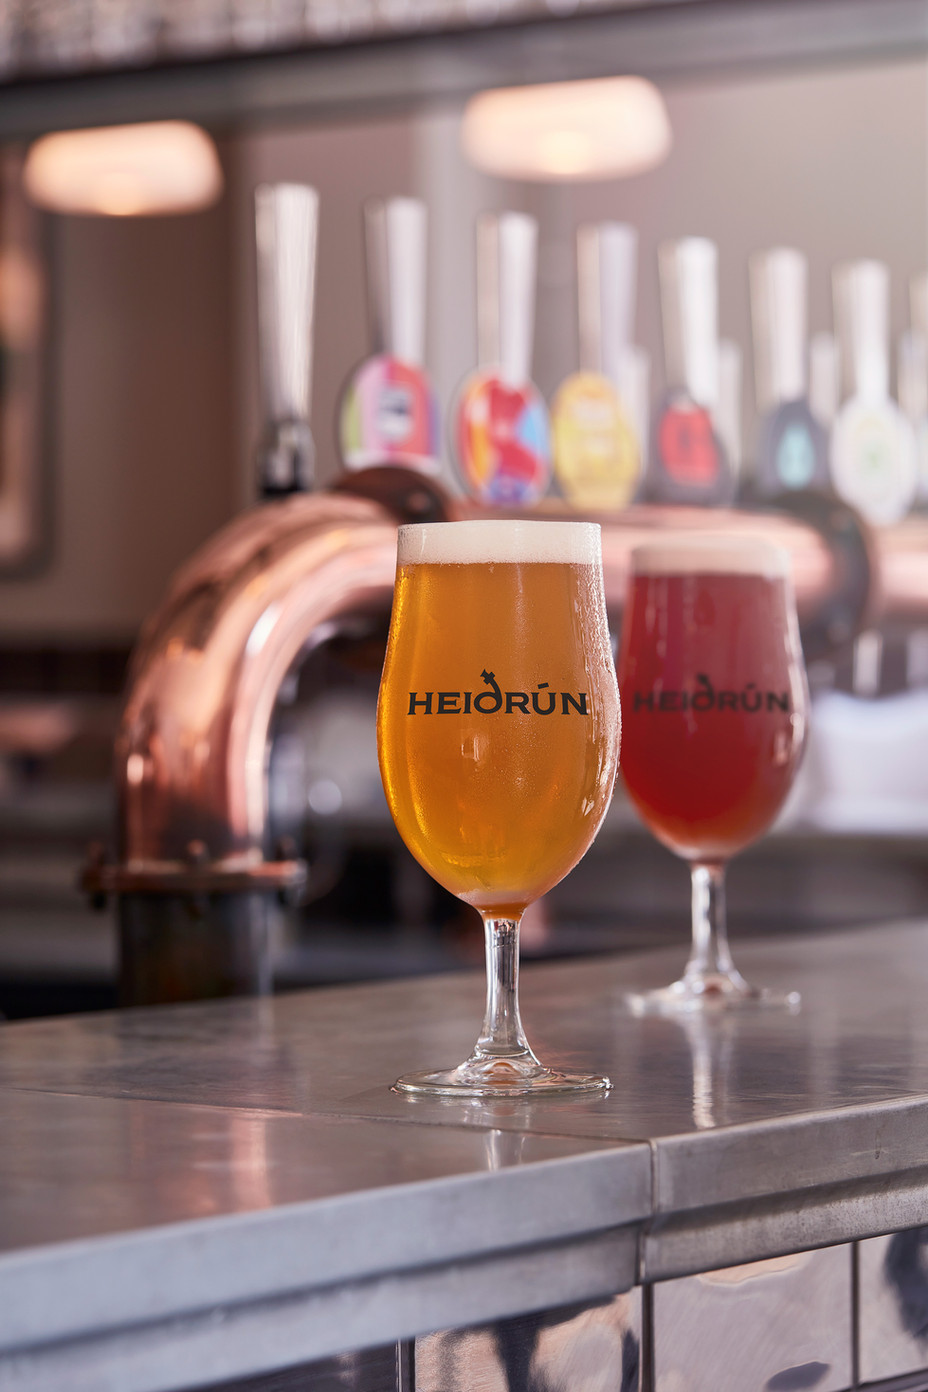 Heidrun craft beer